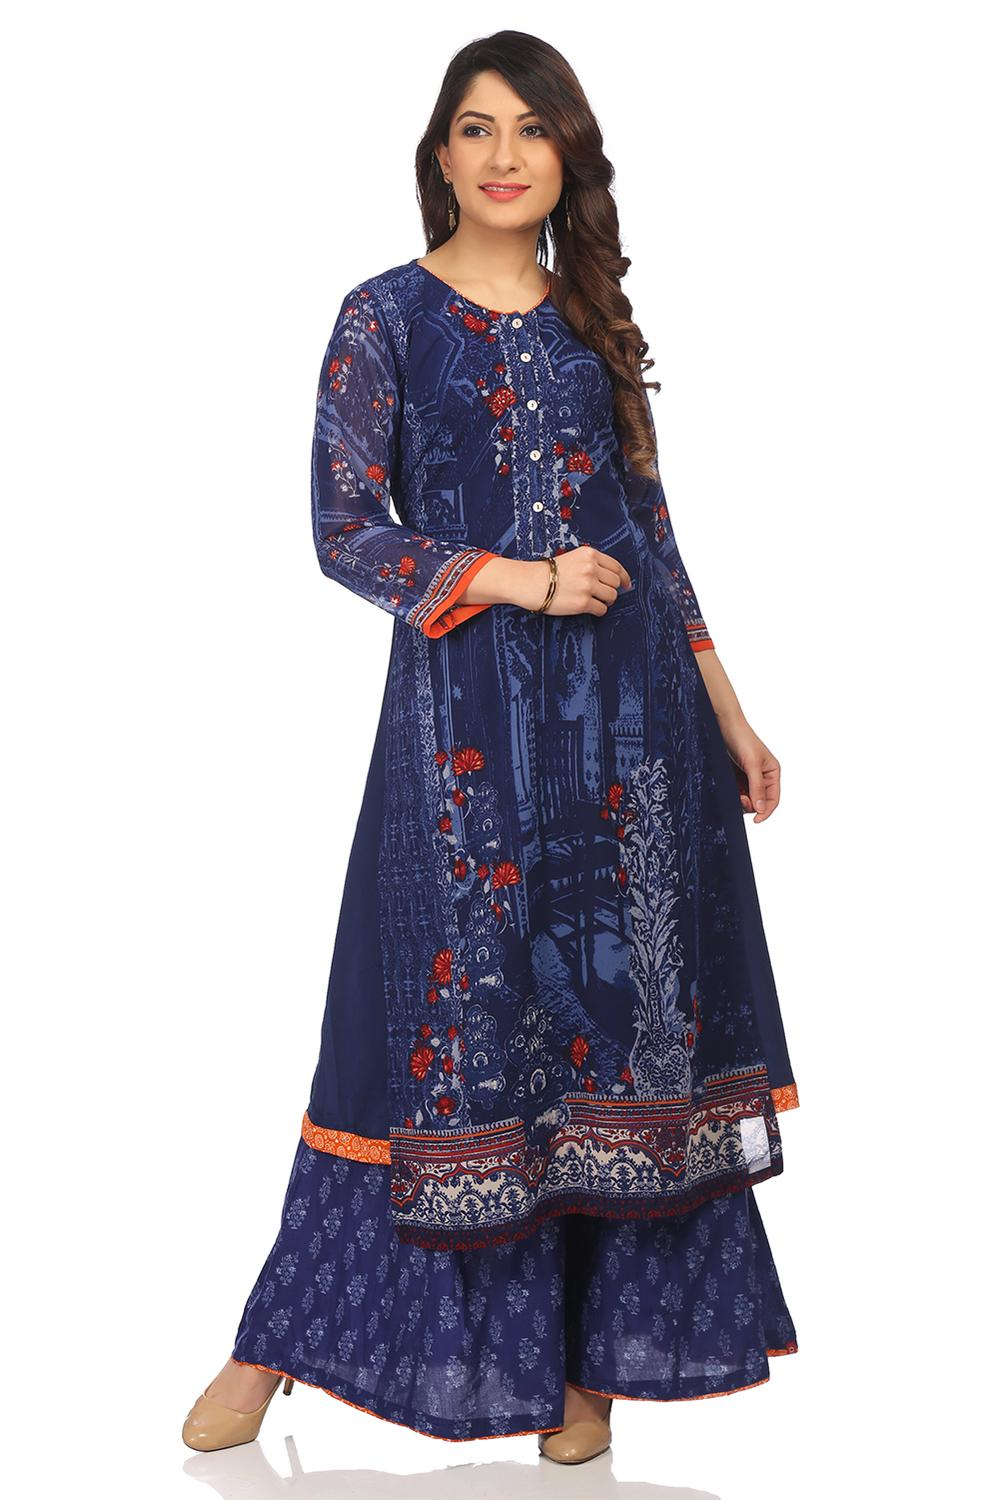 Indigo Straight Poly Cotton Kurta - INDIGO13653SS1